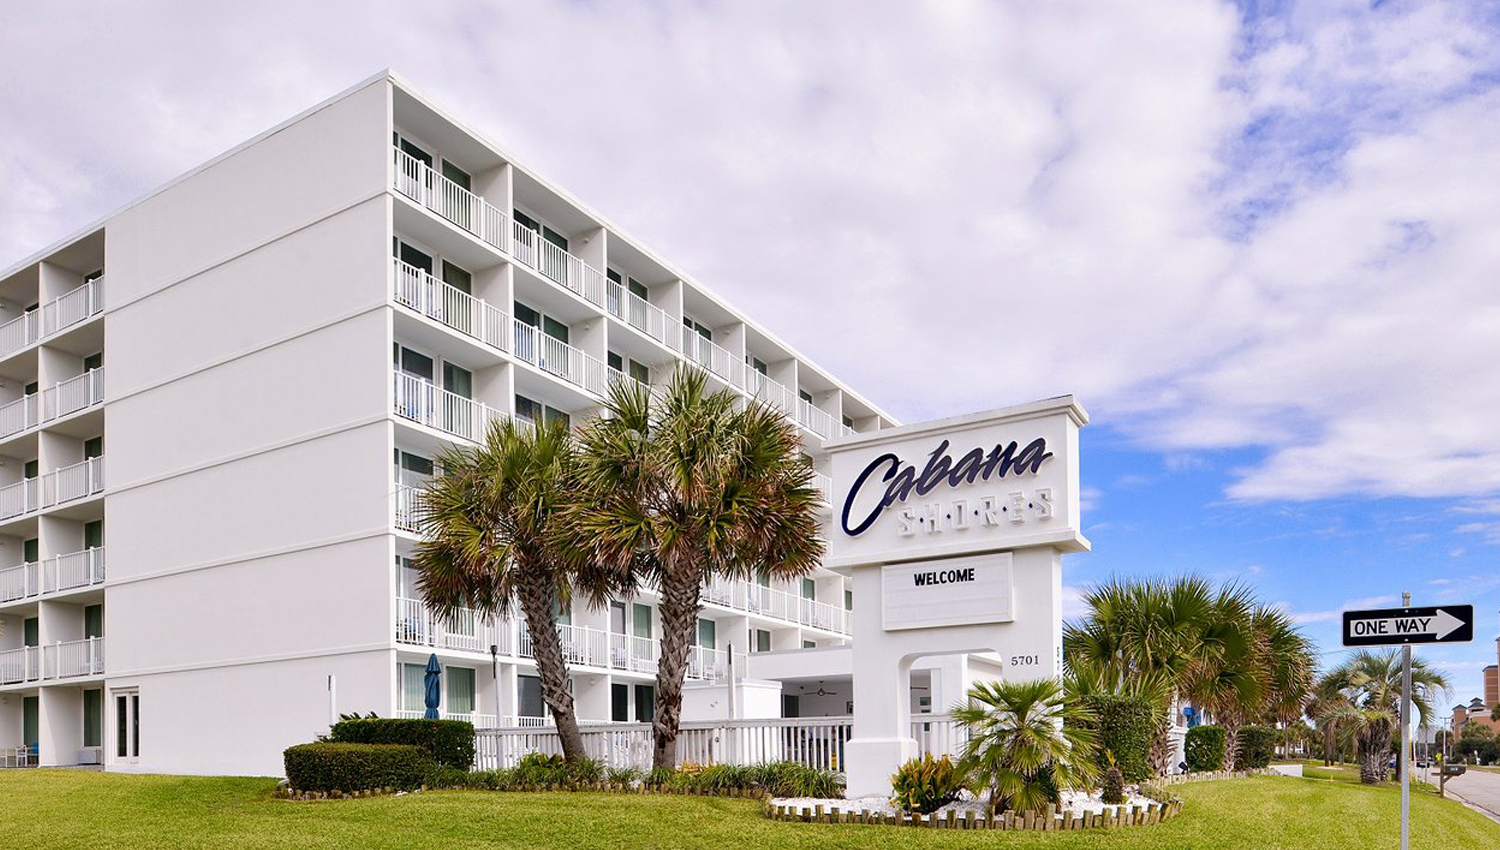 WELCOME TO CABANA SHORES HOTEL IN MYRTLE BEACH